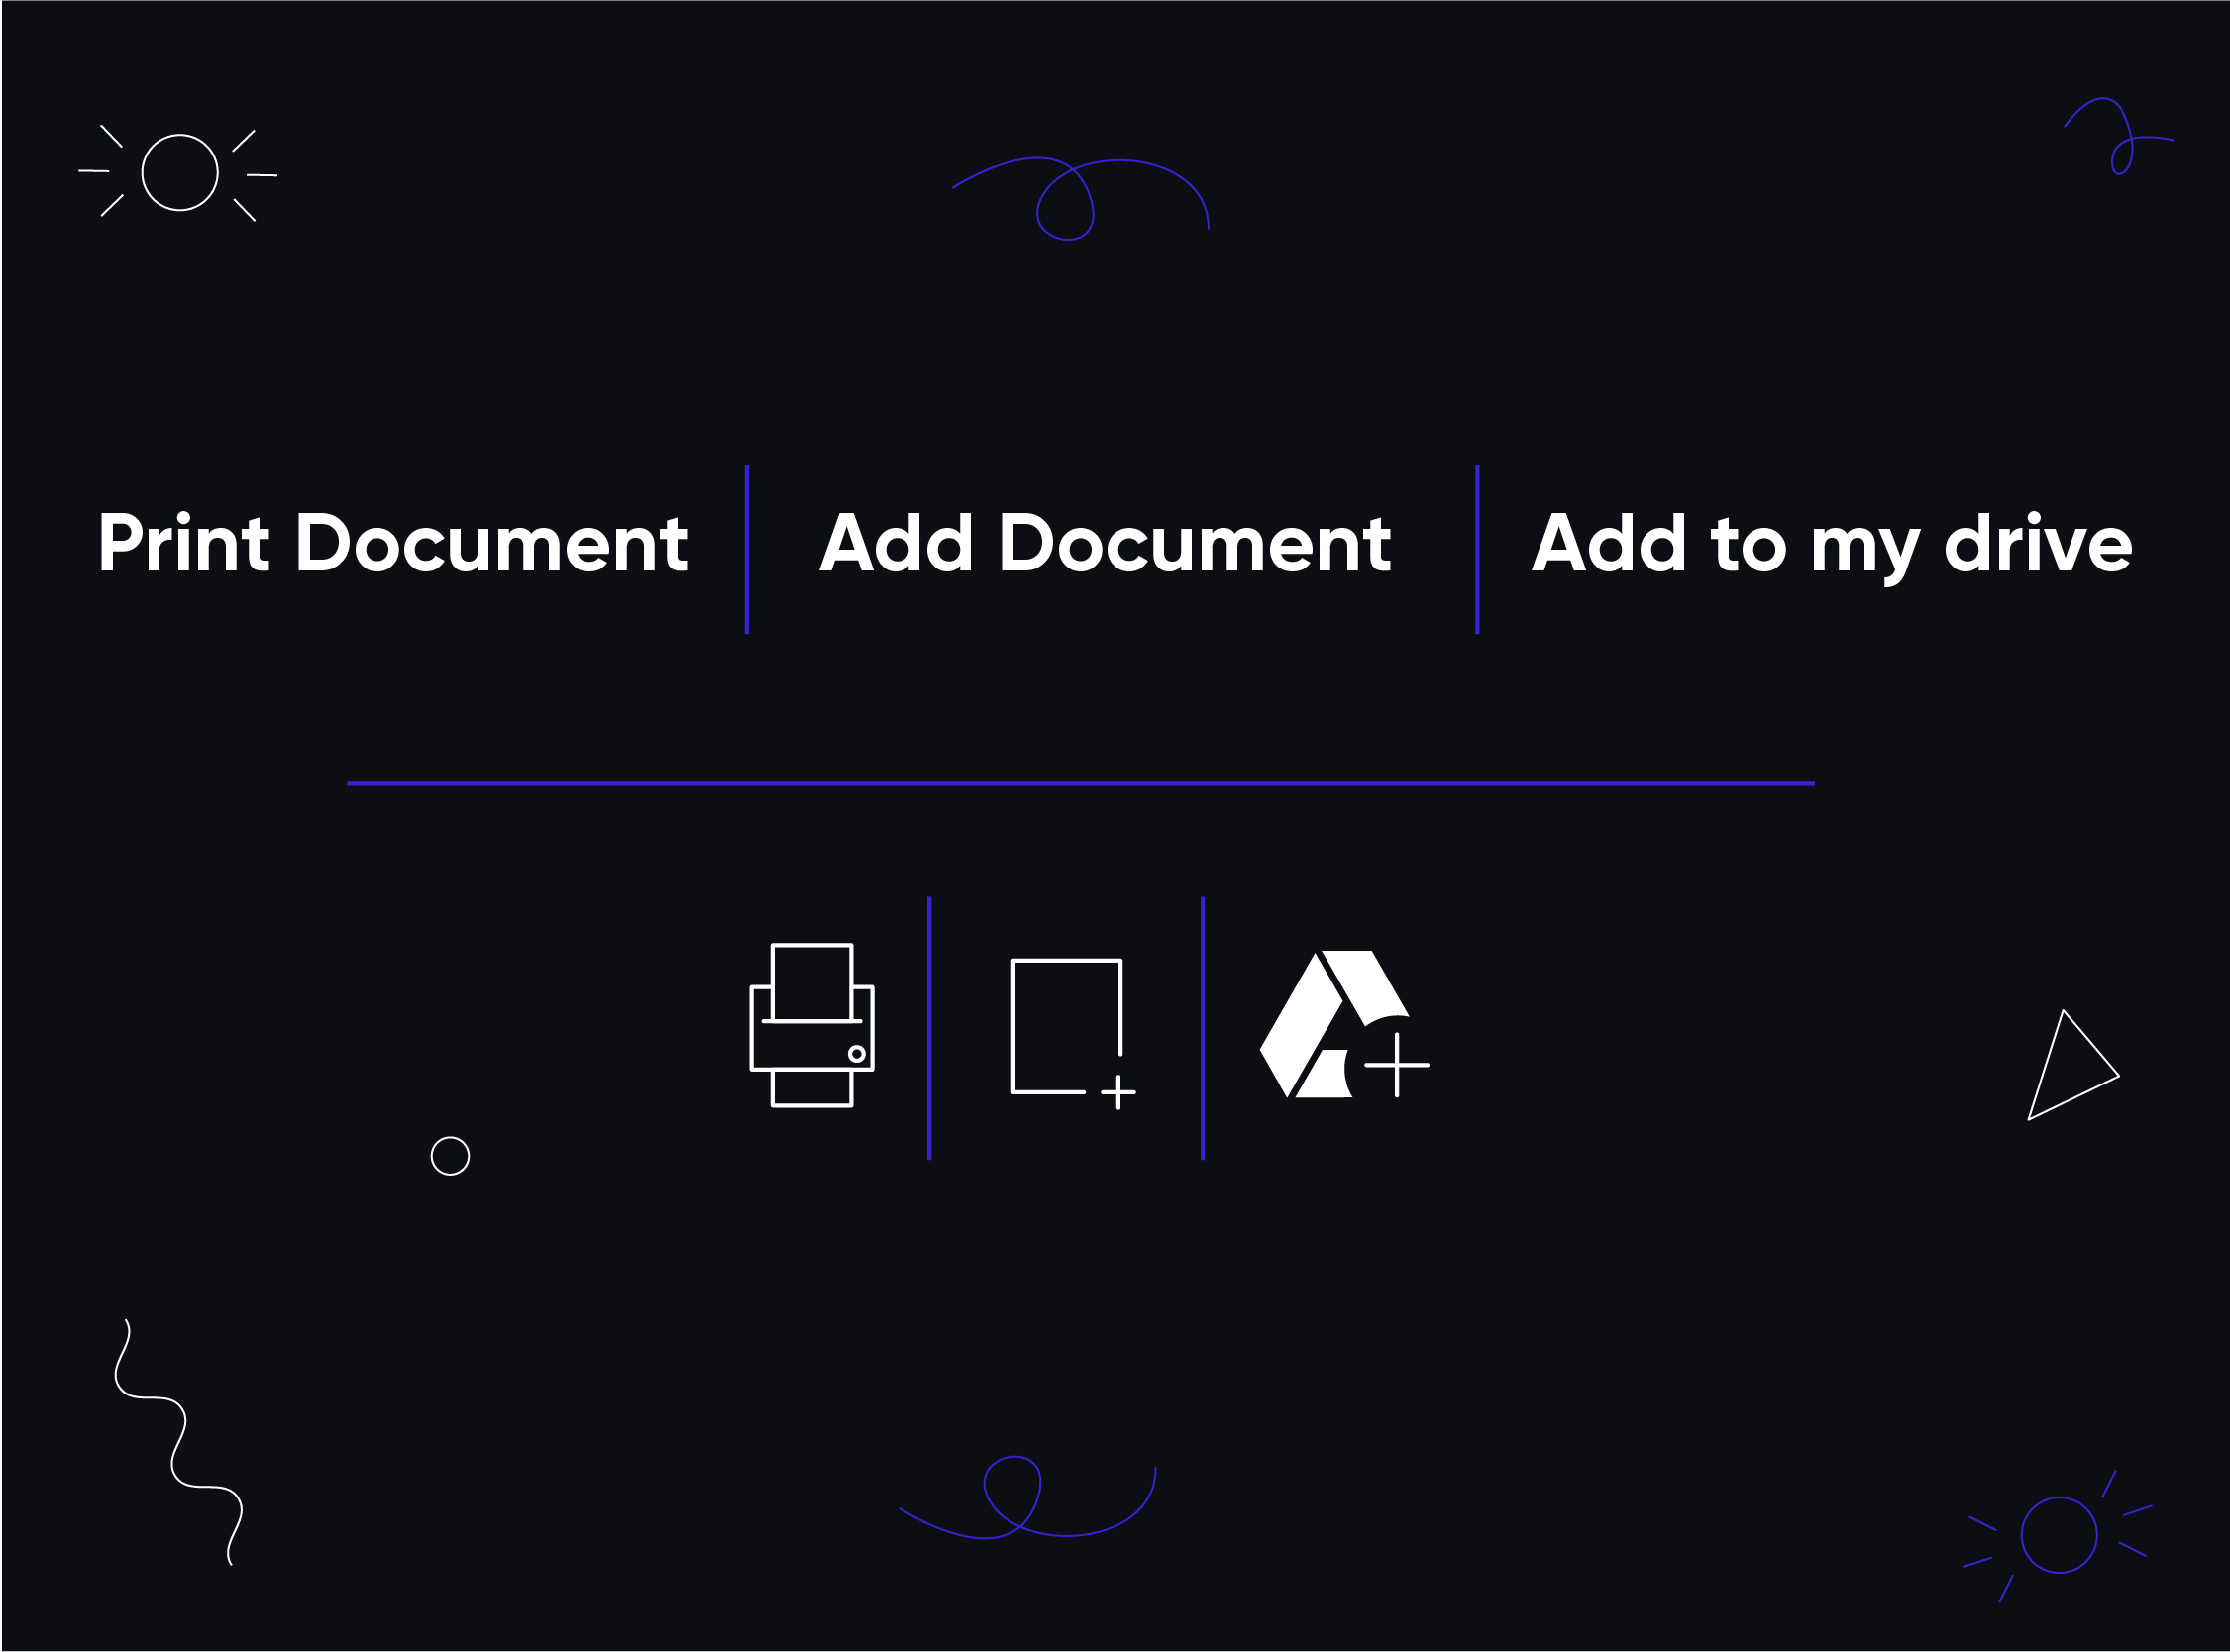 Why is icon design important in UI design?